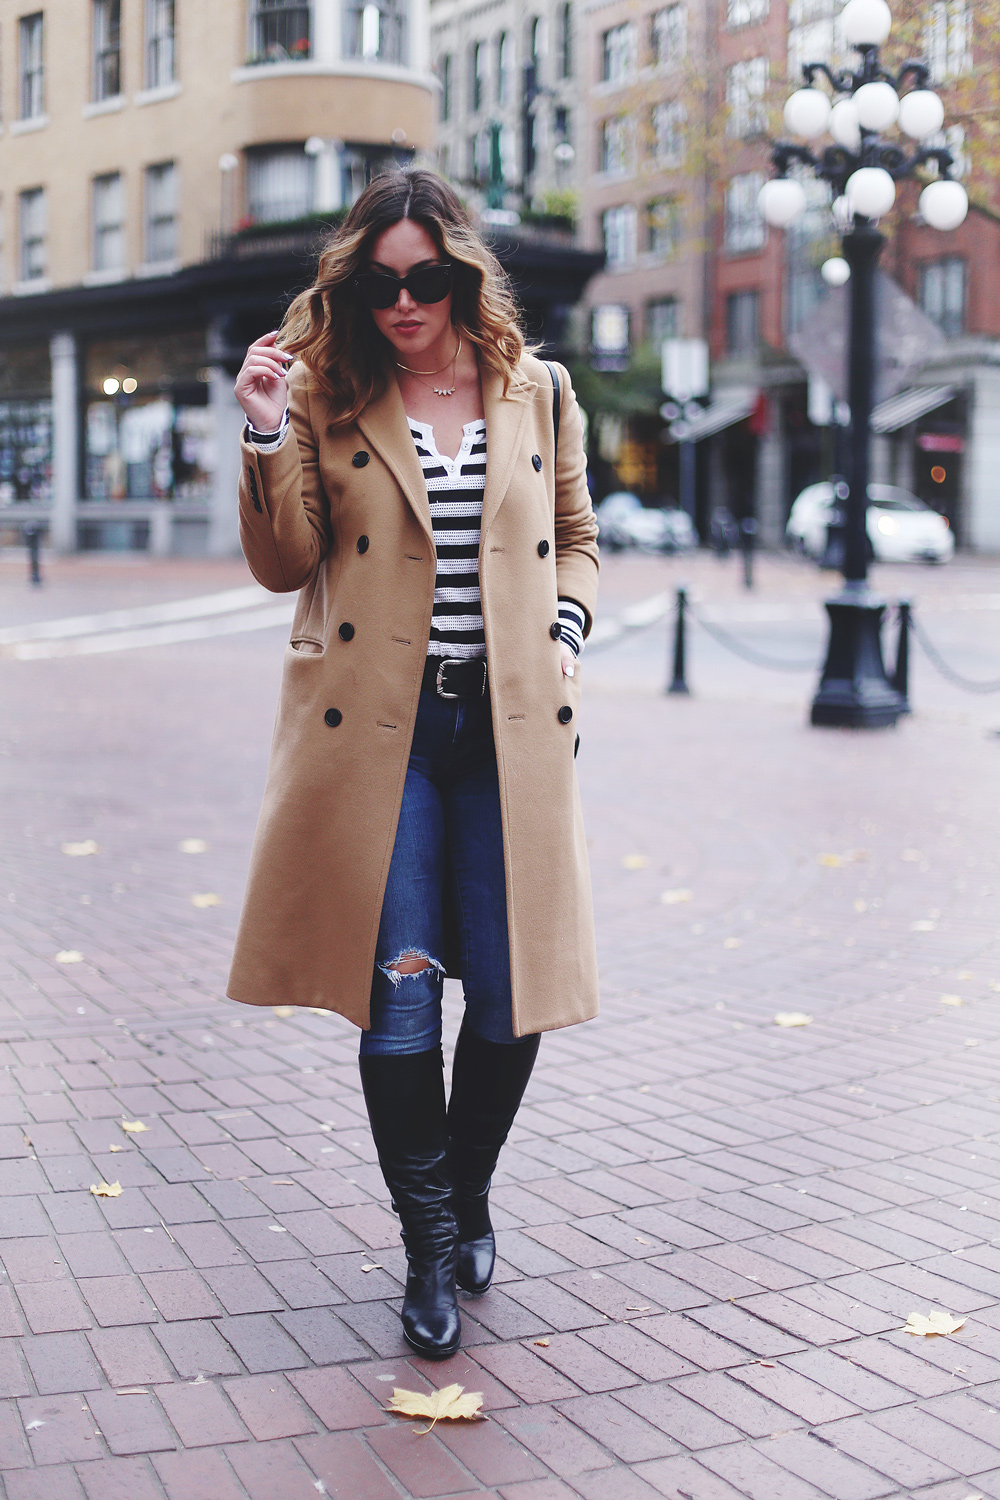 To Vogue or Bust shares camel coat outfit ideas in a camel Aritzia wilfred coat, Mavi skinny jeans, striped Gentle Fawn top, La Canadienne boots and Celine sunglasses in Gastown, Vancouver